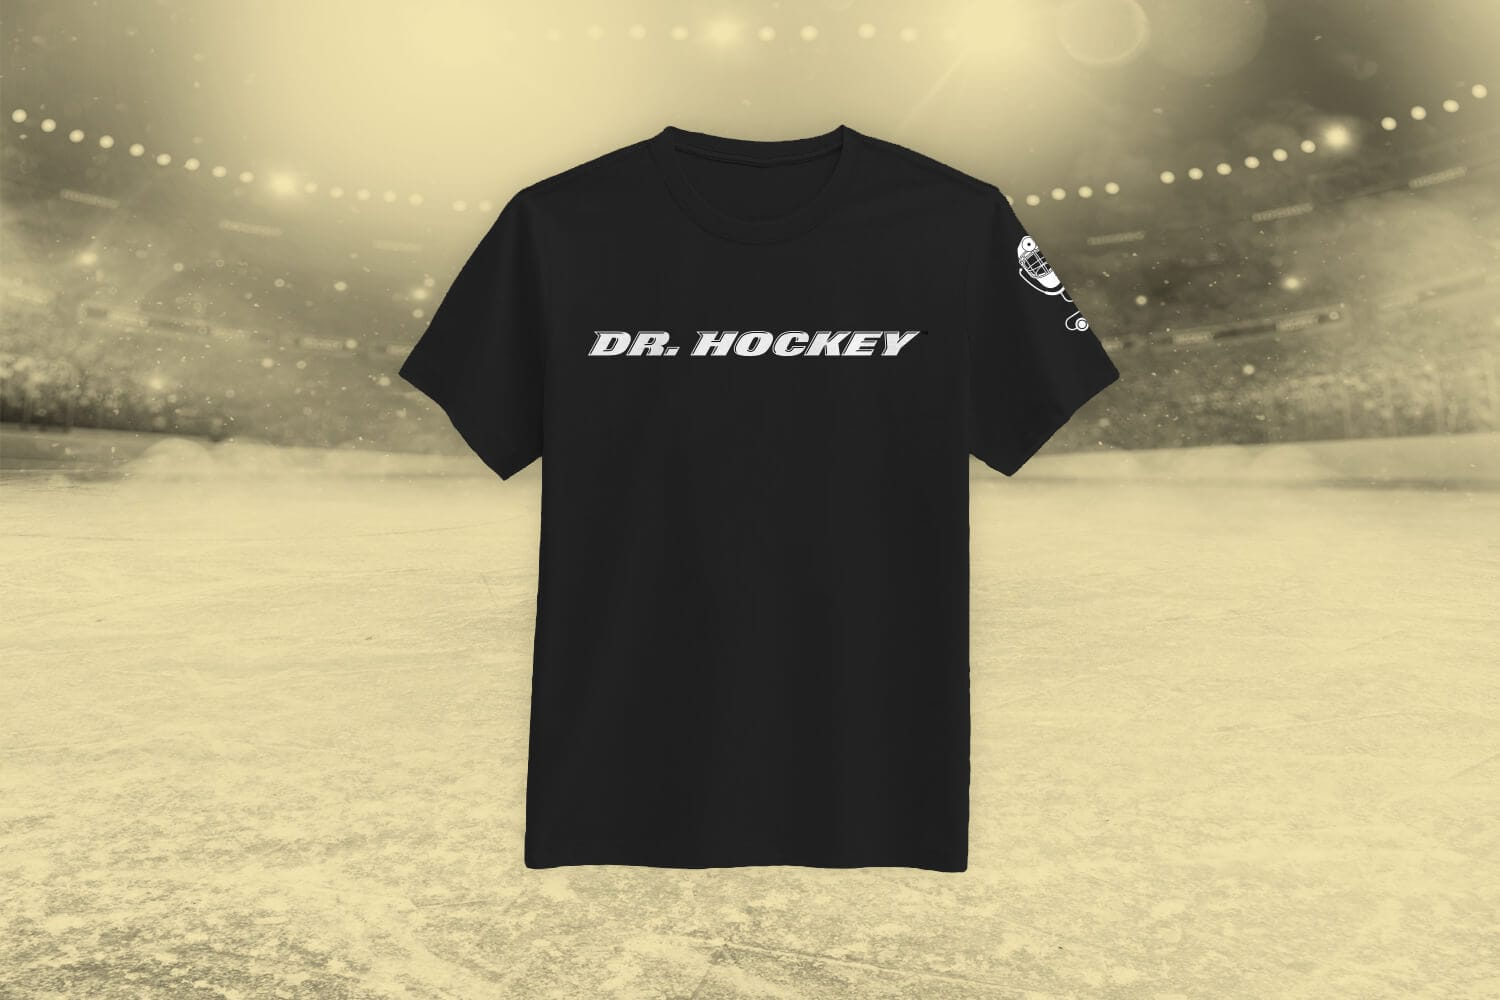 dr hockey logo